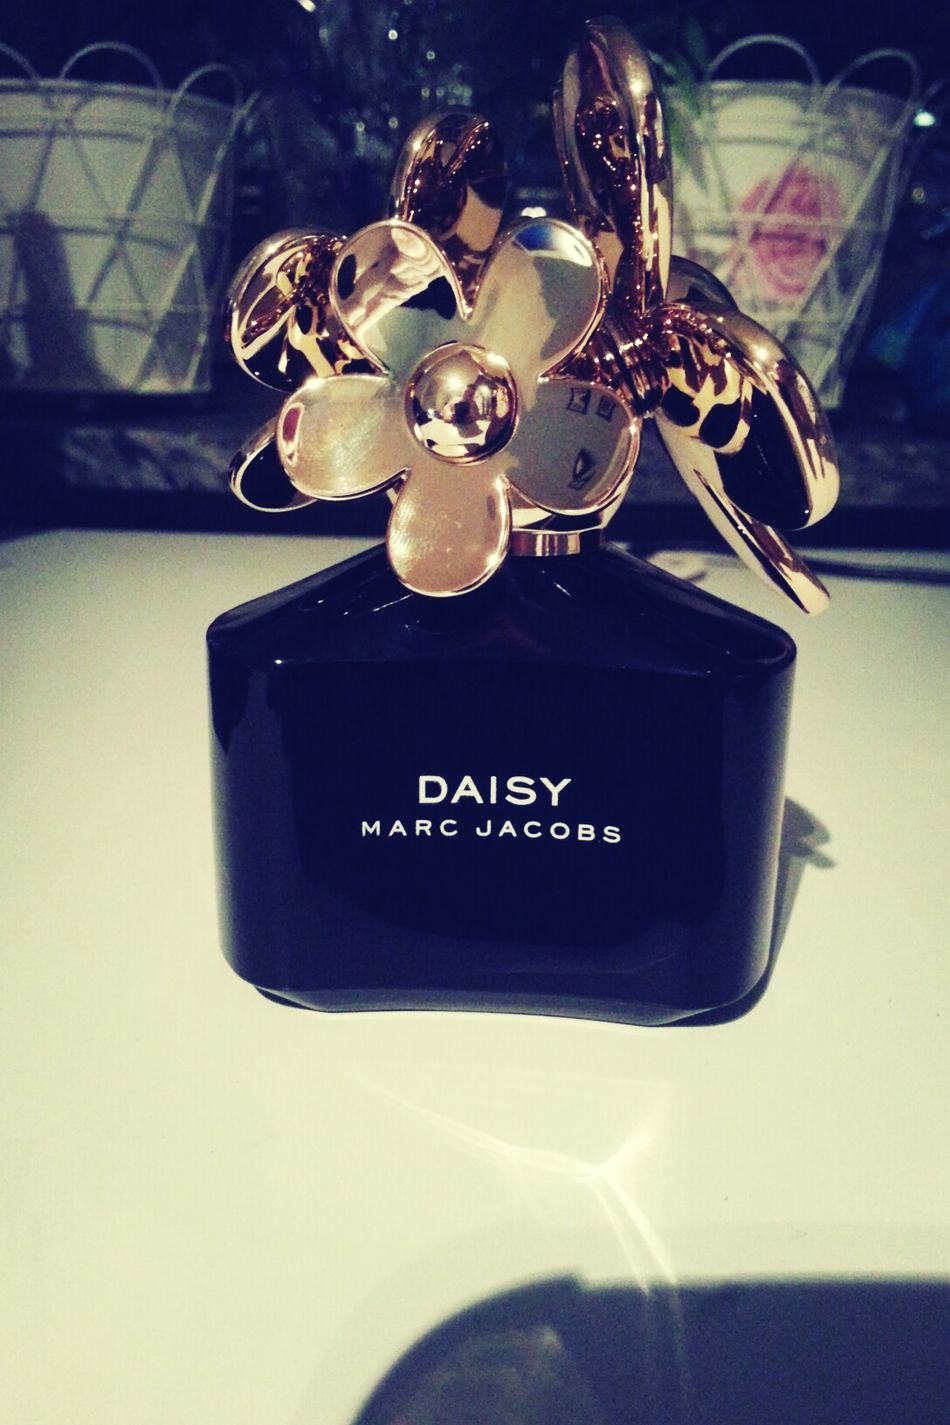 Daisy By Marc Jacobs Favorite Perfume Perfume Love ♥